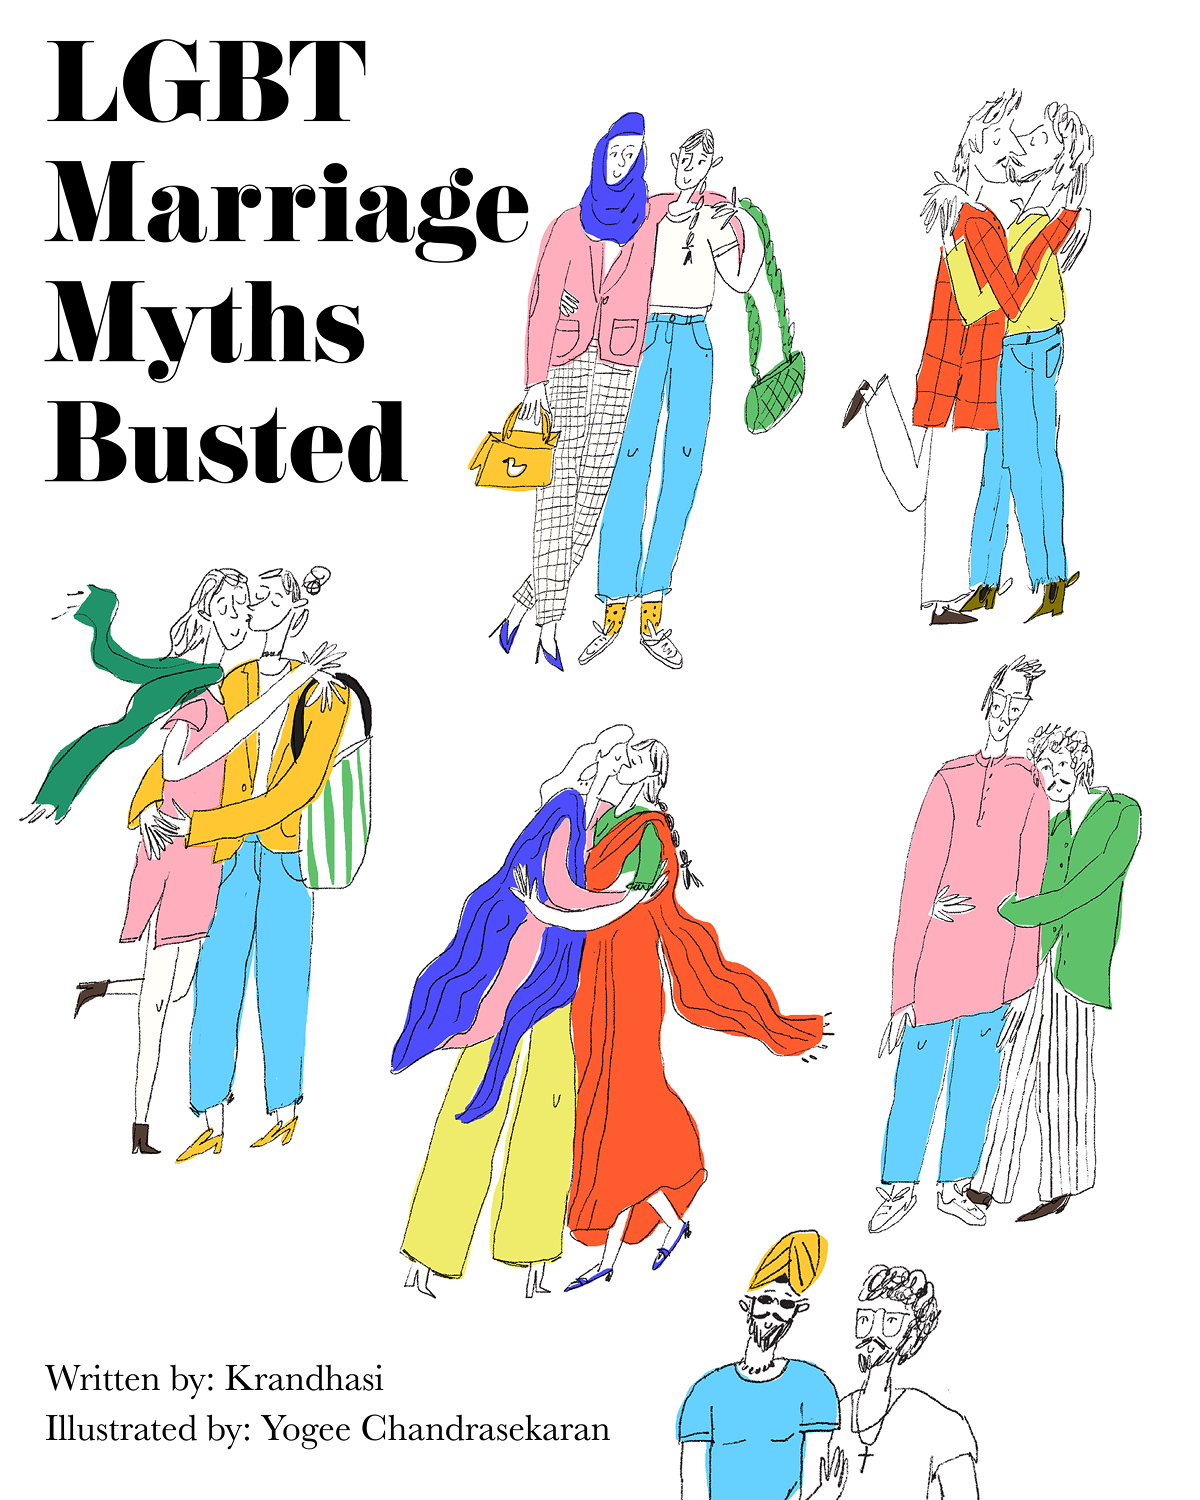 LGBT Marriage Myths Busted